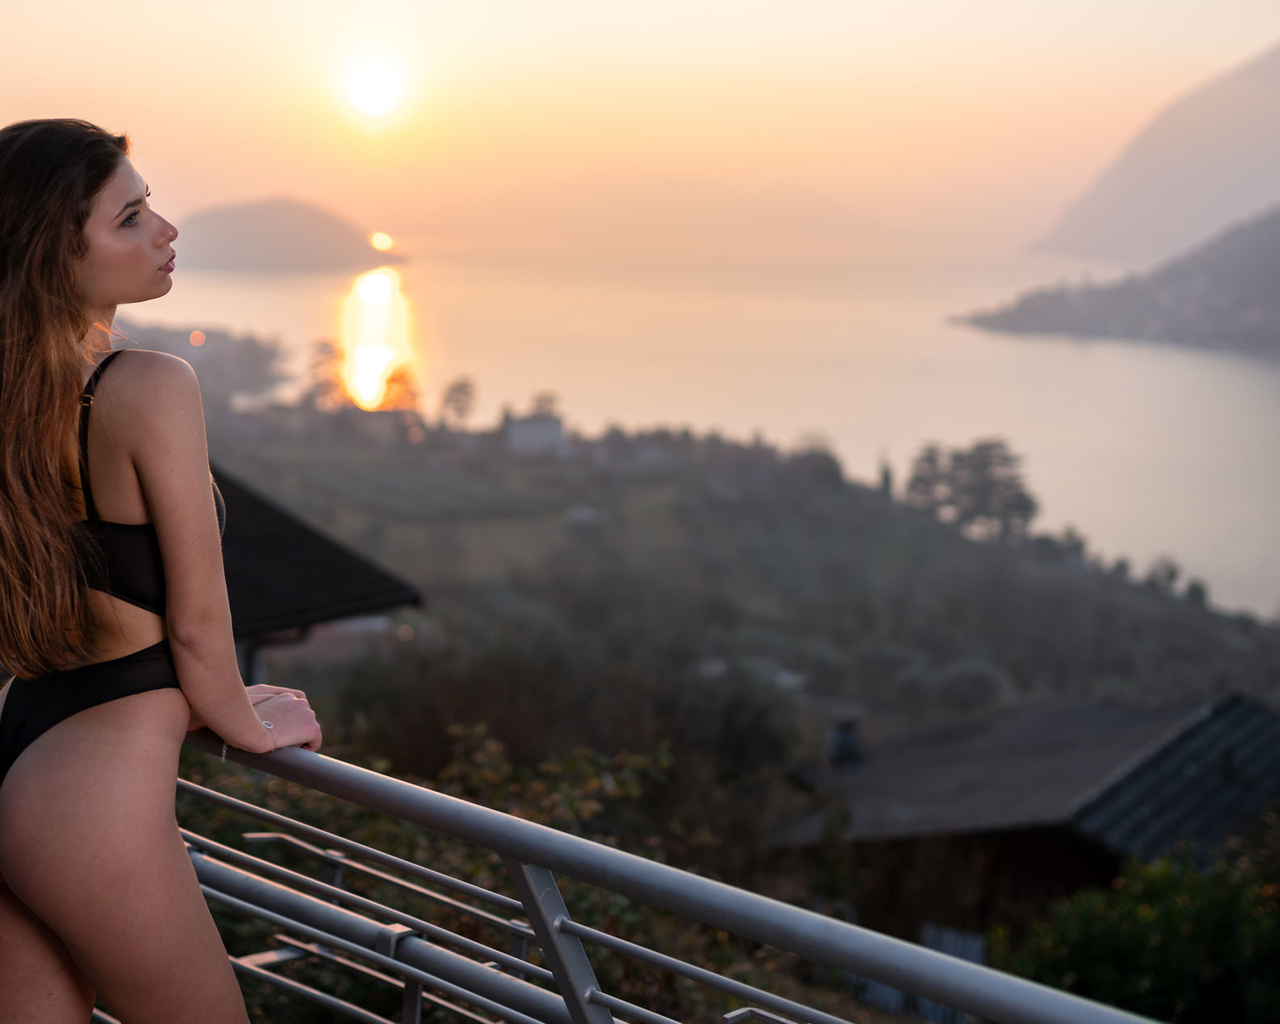 women, marco squassina, sunset, sea, body lingerie, brunette, women outdoors, looking away, ass, long hair, black lingerie, balcony